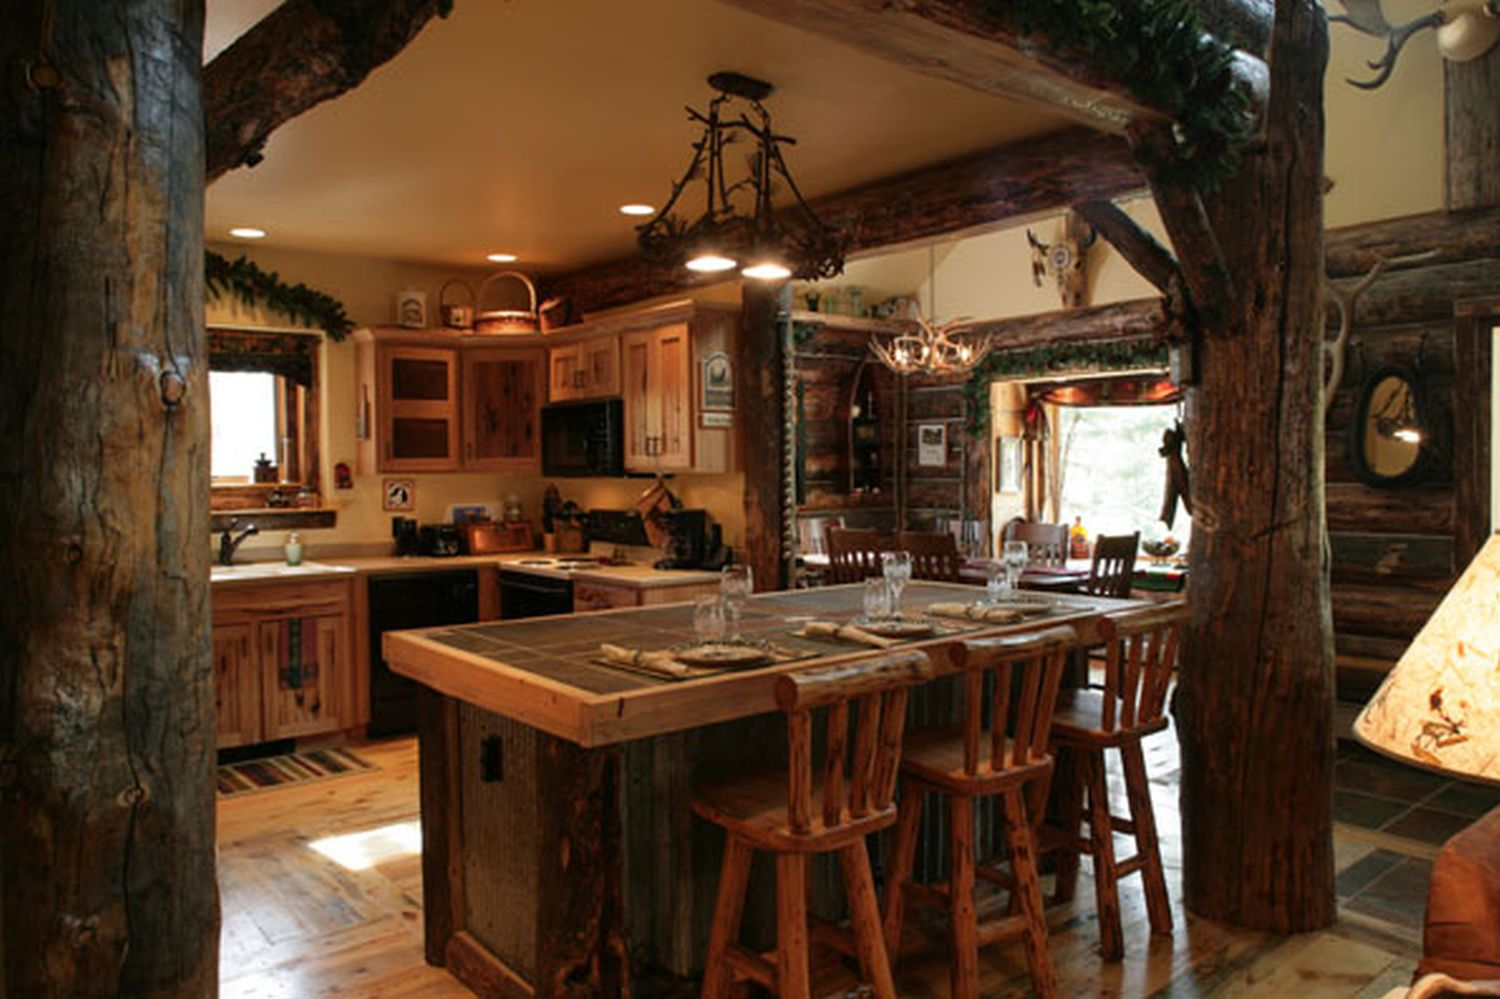 15 Traditional & Rustic Warm Interior Wood Decorating ... on Traditional Rustic Decor  id=78110